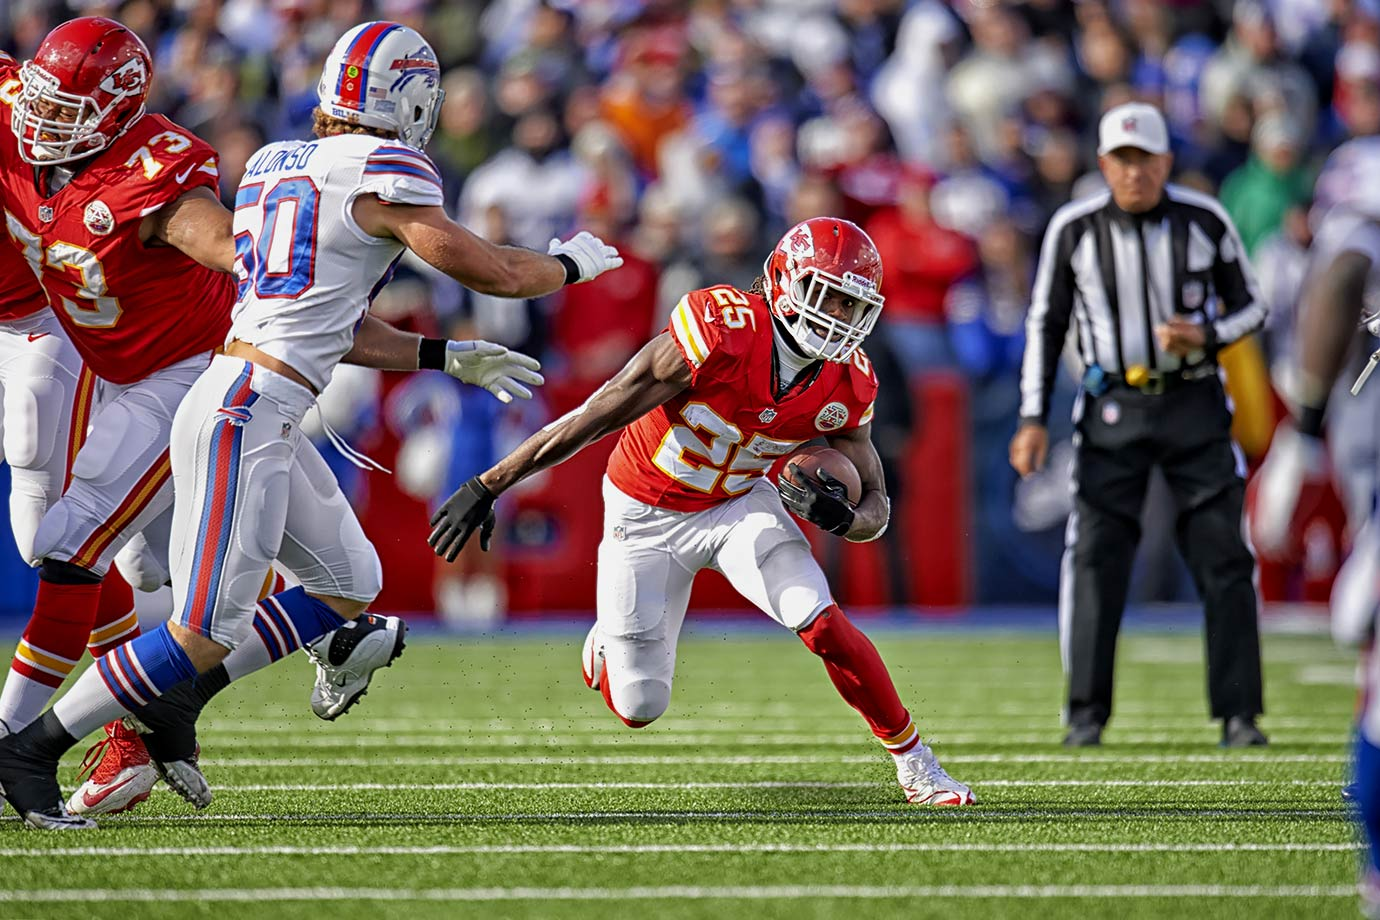 With their Week 9 victory over the Buffalo Bills in 2013, Jamaal Charles and the Kansas City Chiefs matched the franchise record for most consecutive wins. Their bye week may have been detrimental, however, as their streak ended with a 27-17 loss in Denver after the respite.